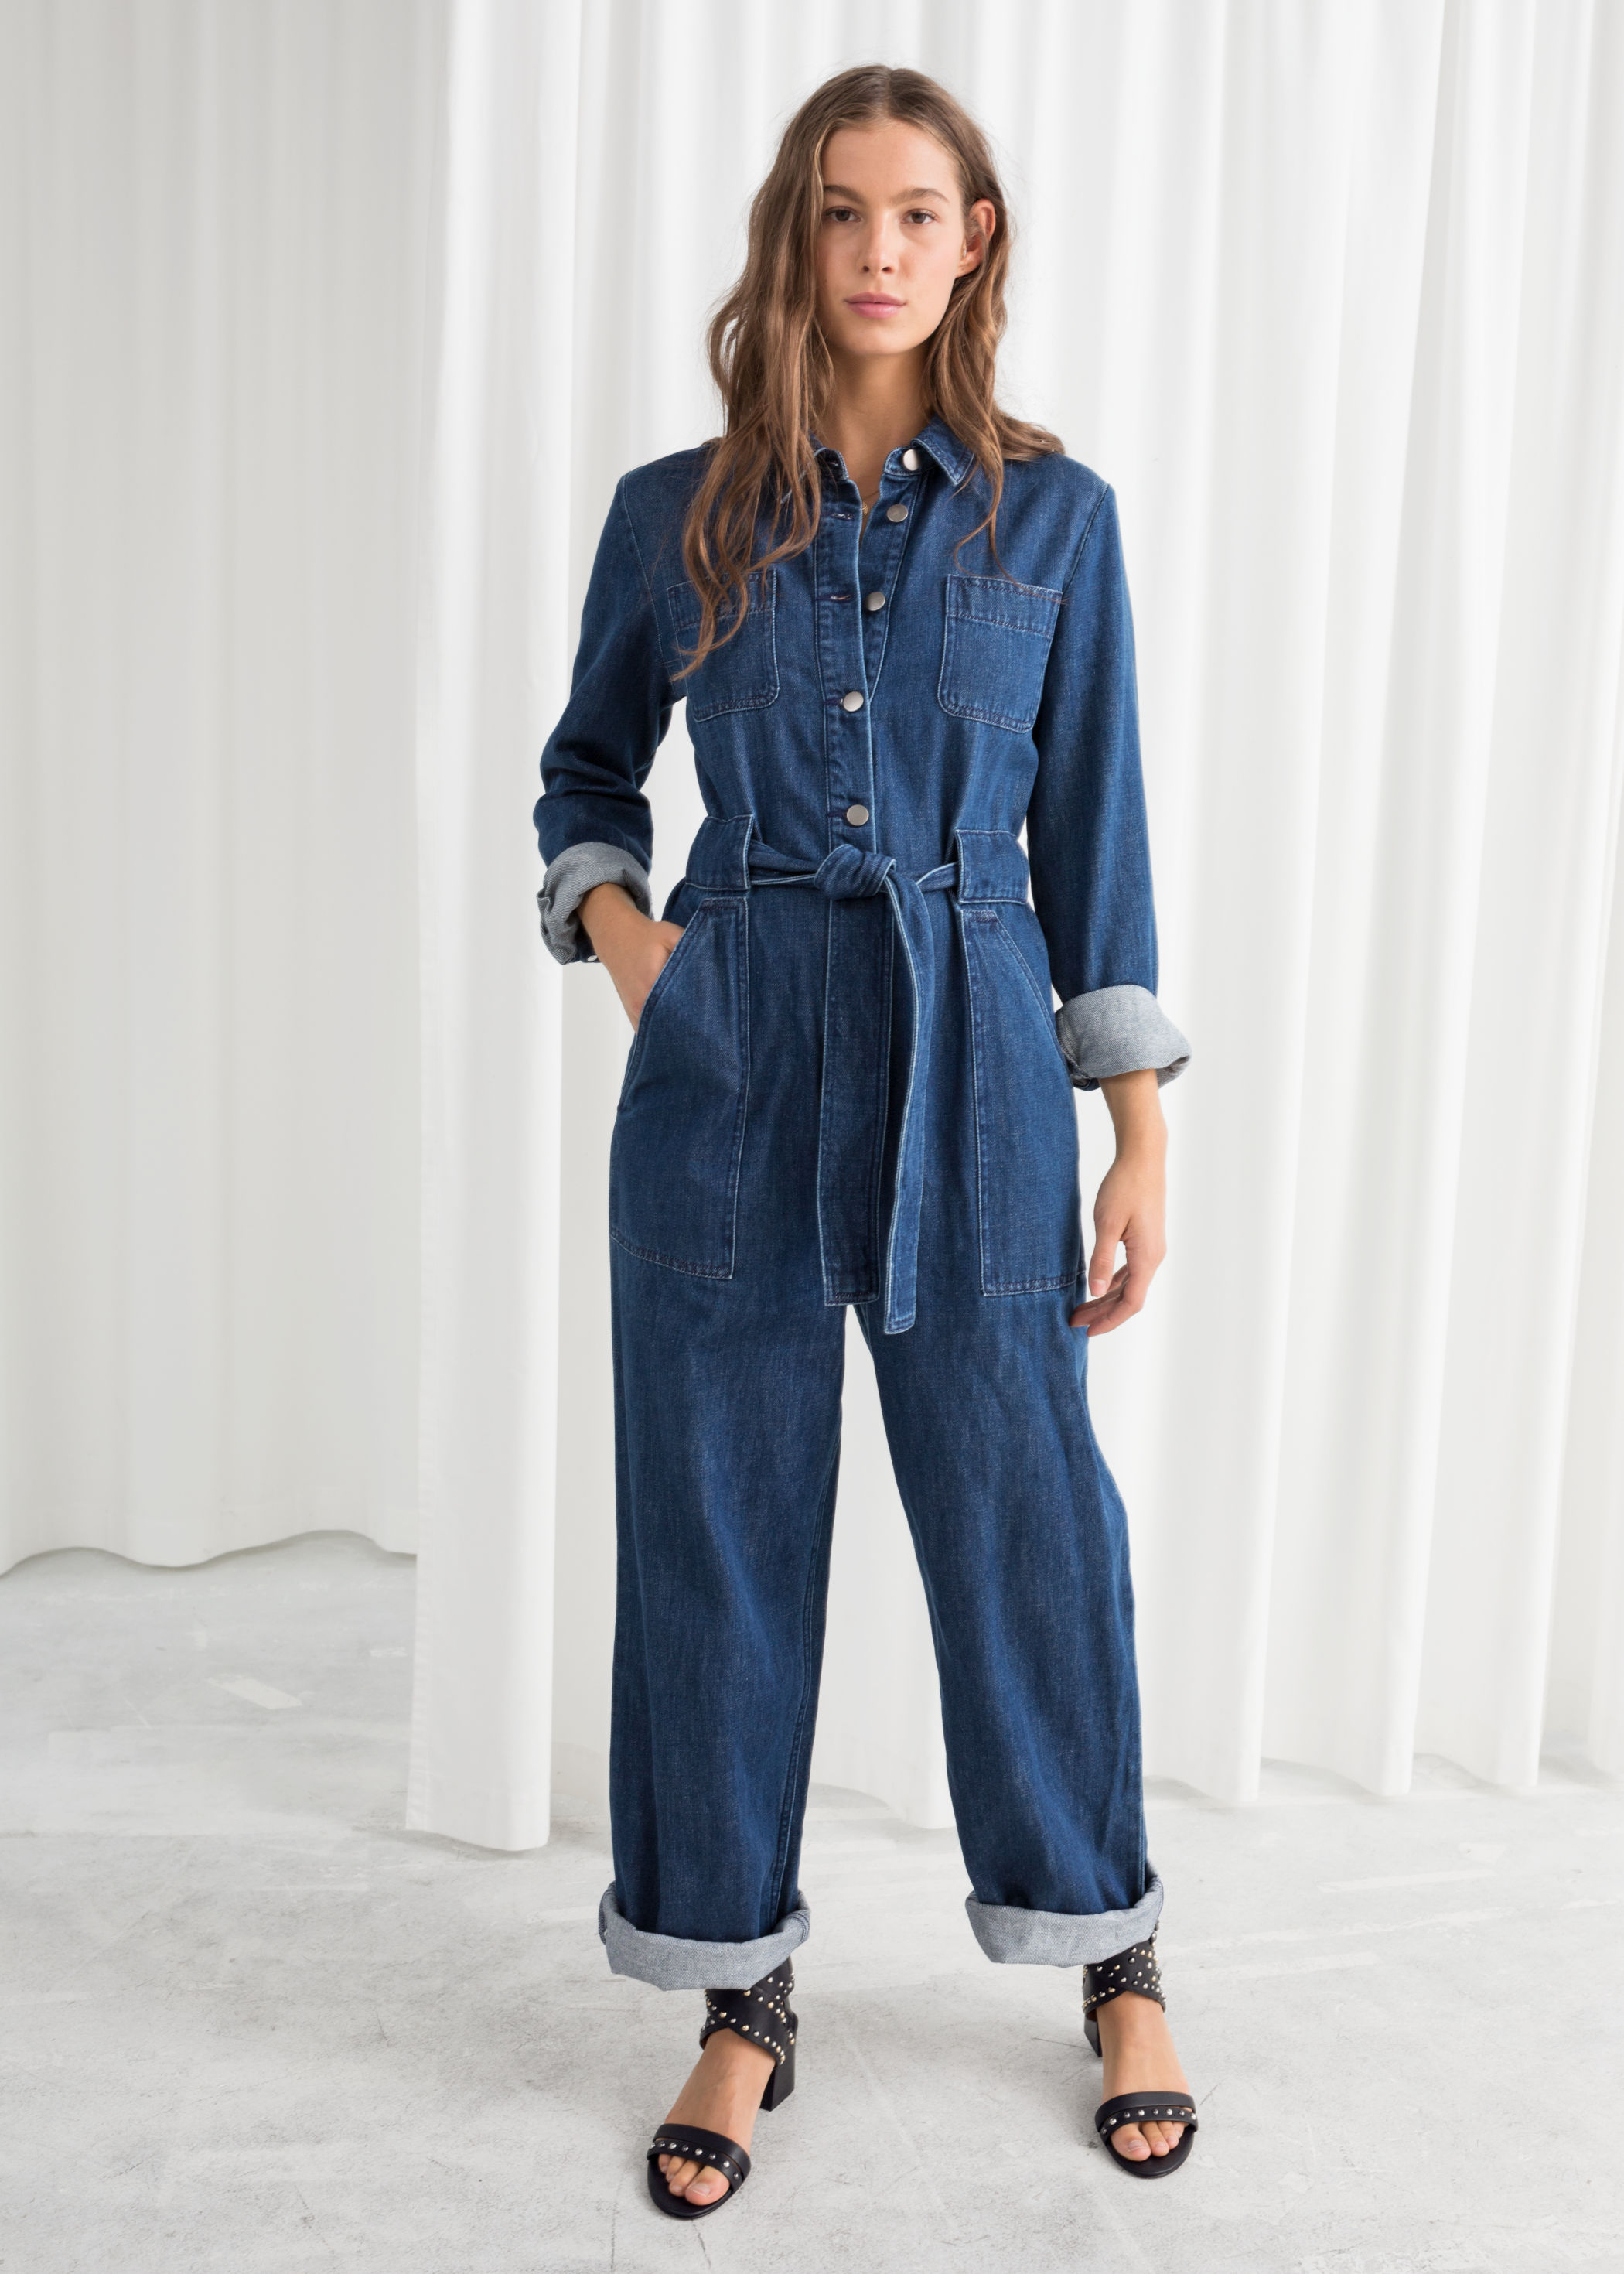 & other stories denim overall jumpsuit £89